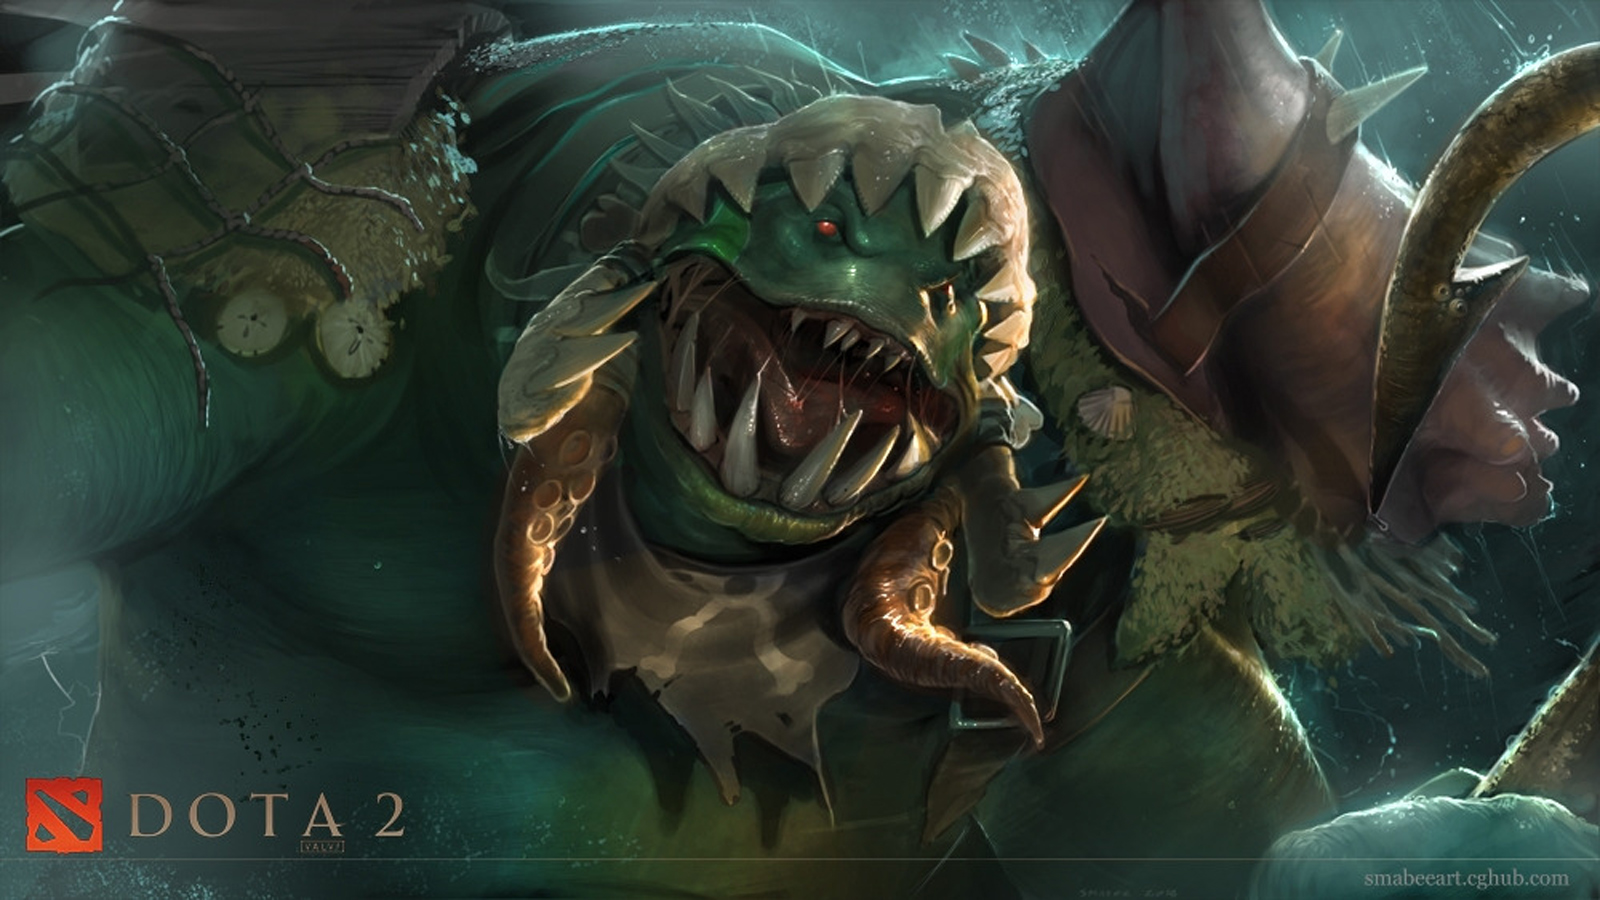 Dota 2 Tidehunter 6z HD Wallpaper